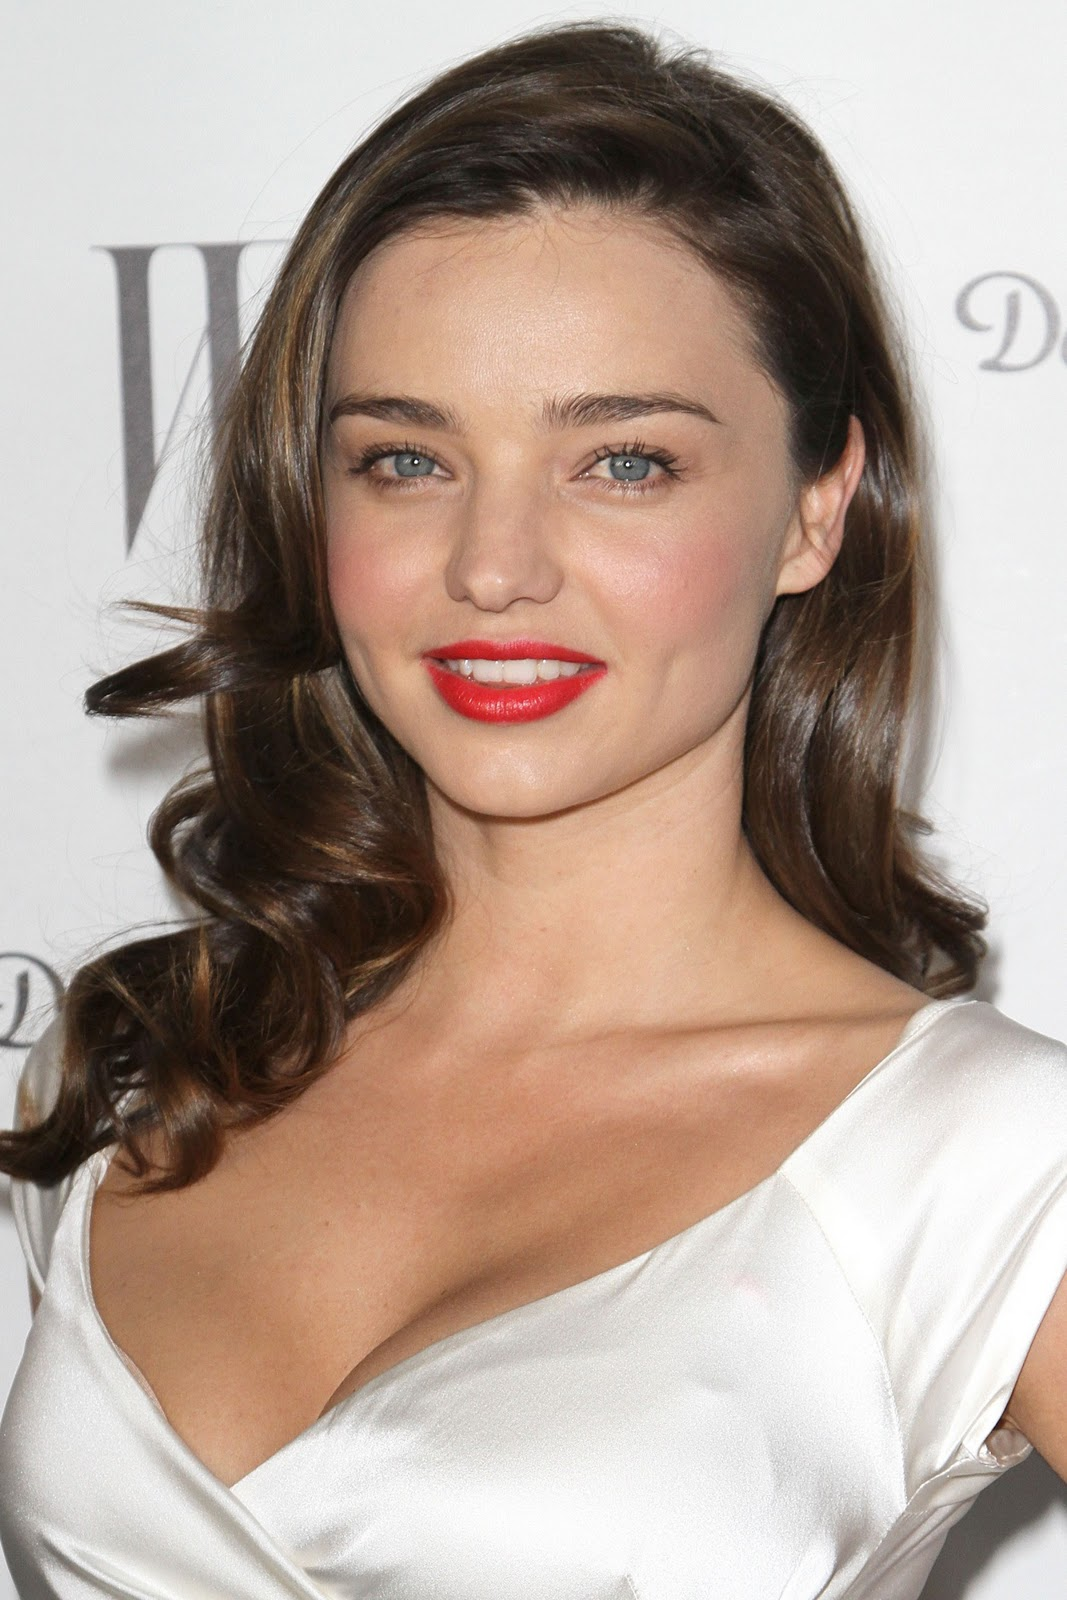 Miranda Kerr S Best Style Looks Ever: Kareena Kapoor Hot Pix: Miranda Kerr